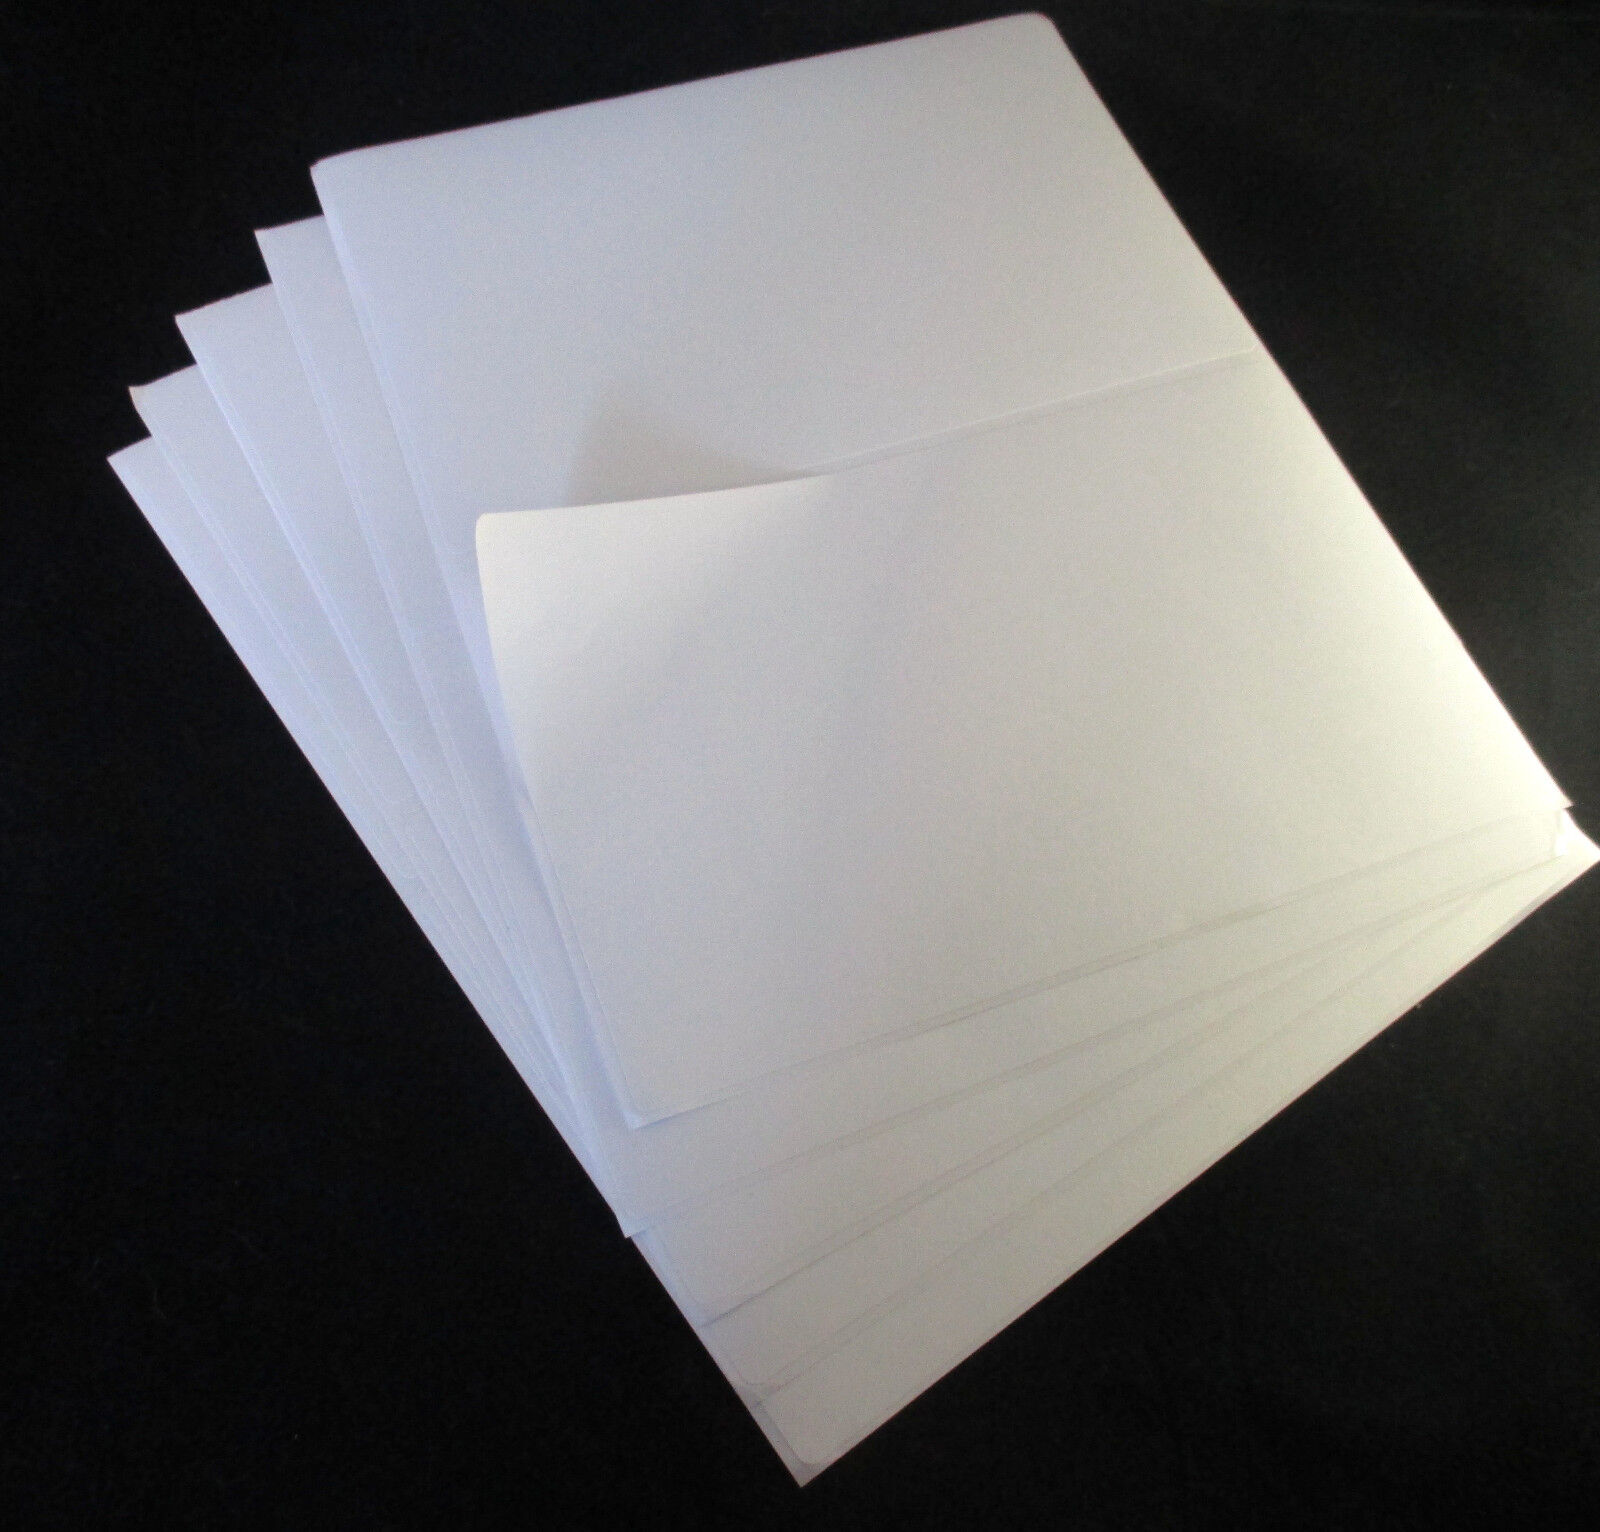 Self adhesive photo sheets Australian Exporters - Exporting Companies in New South Wales